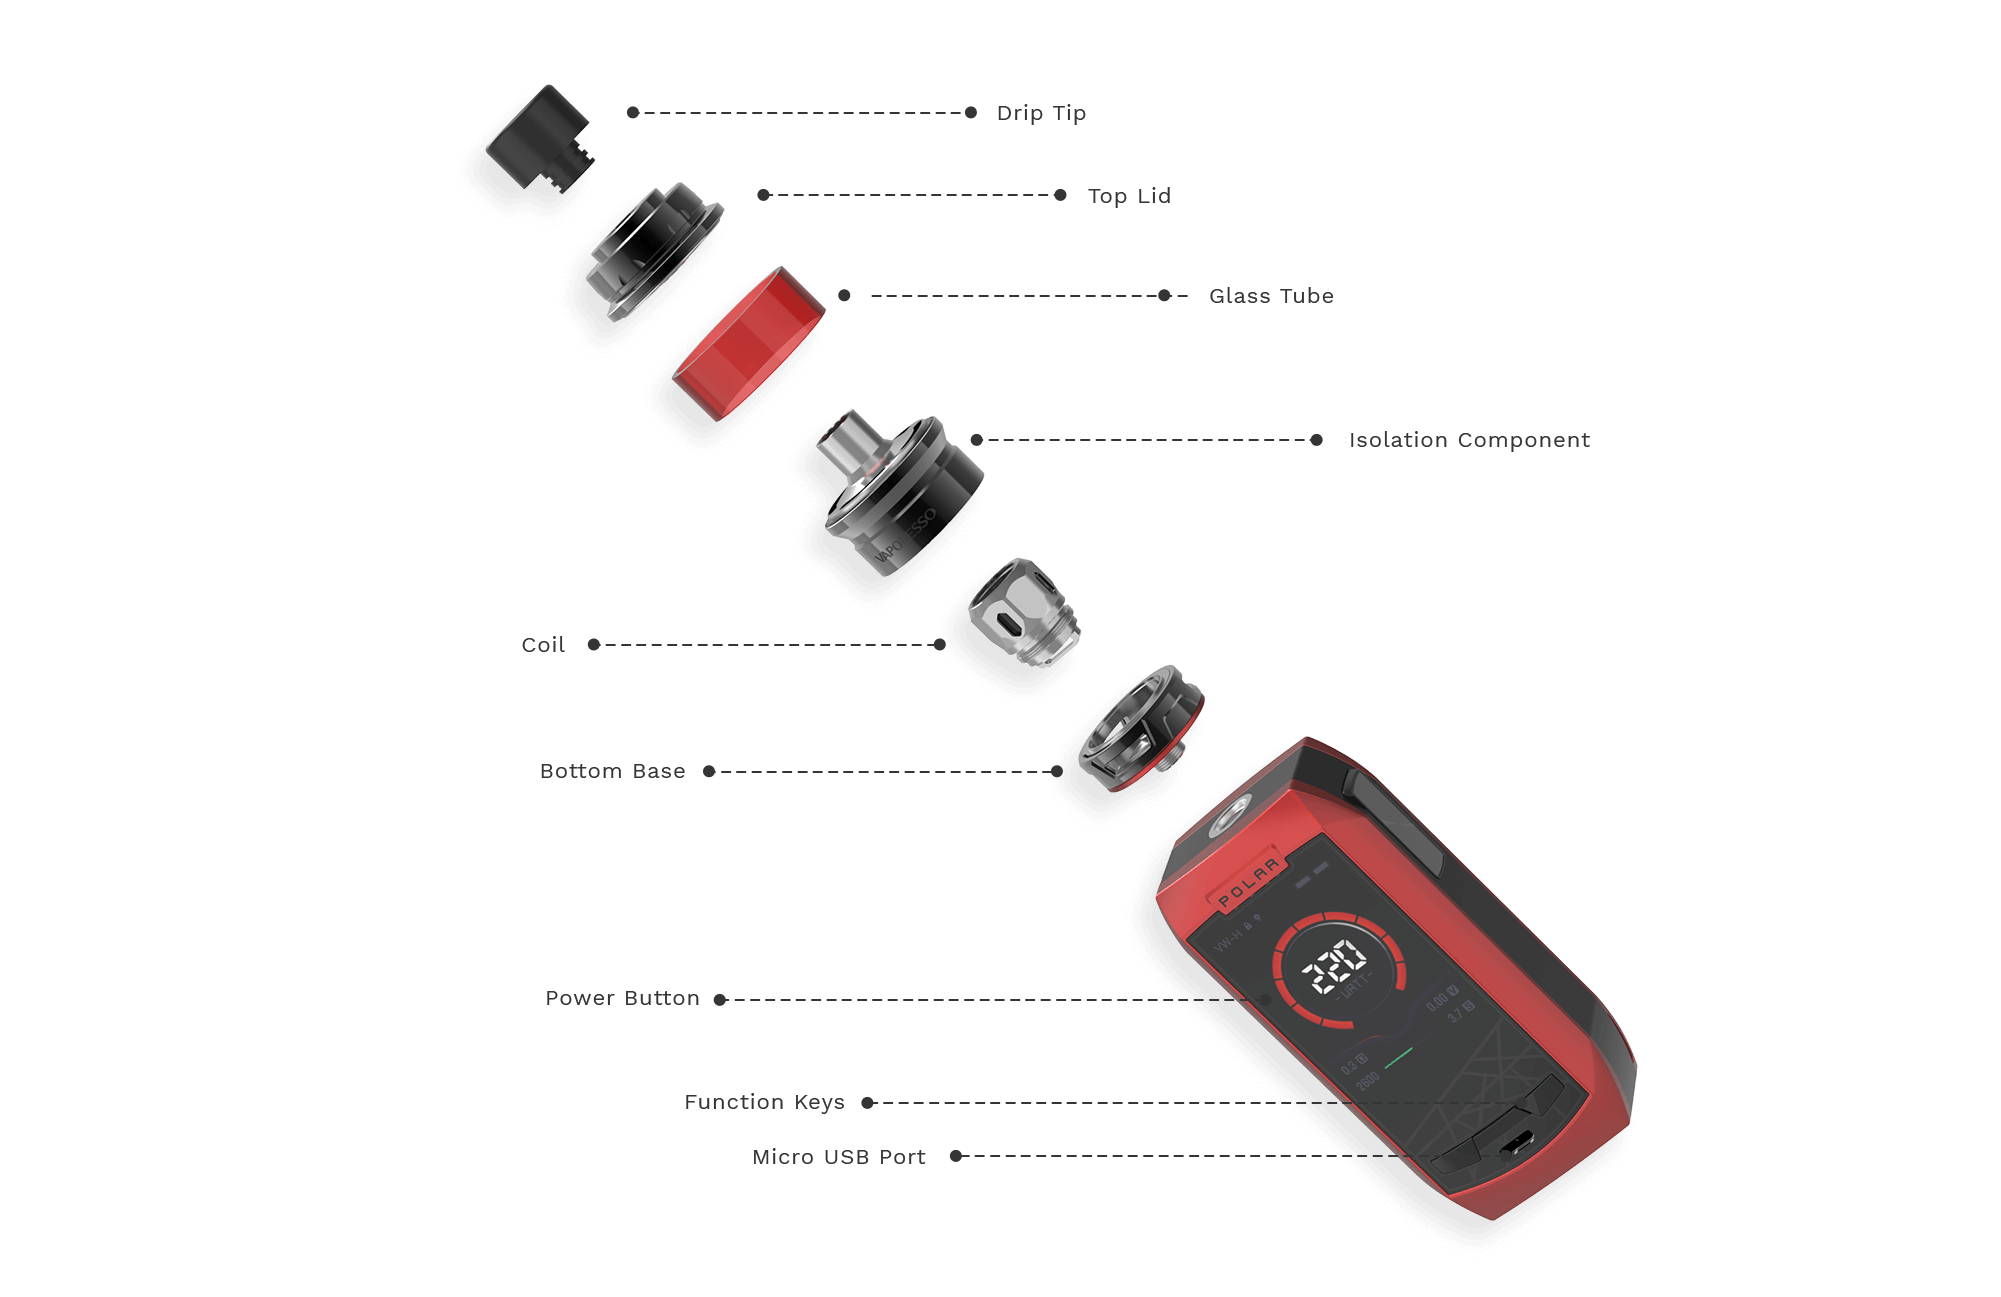 https://www.vaporesso.com/hs-fs/hubfs/img/Site/Products/Polar2/polar_10.png?t=1533607391020&width=2000&name=polar_10.png